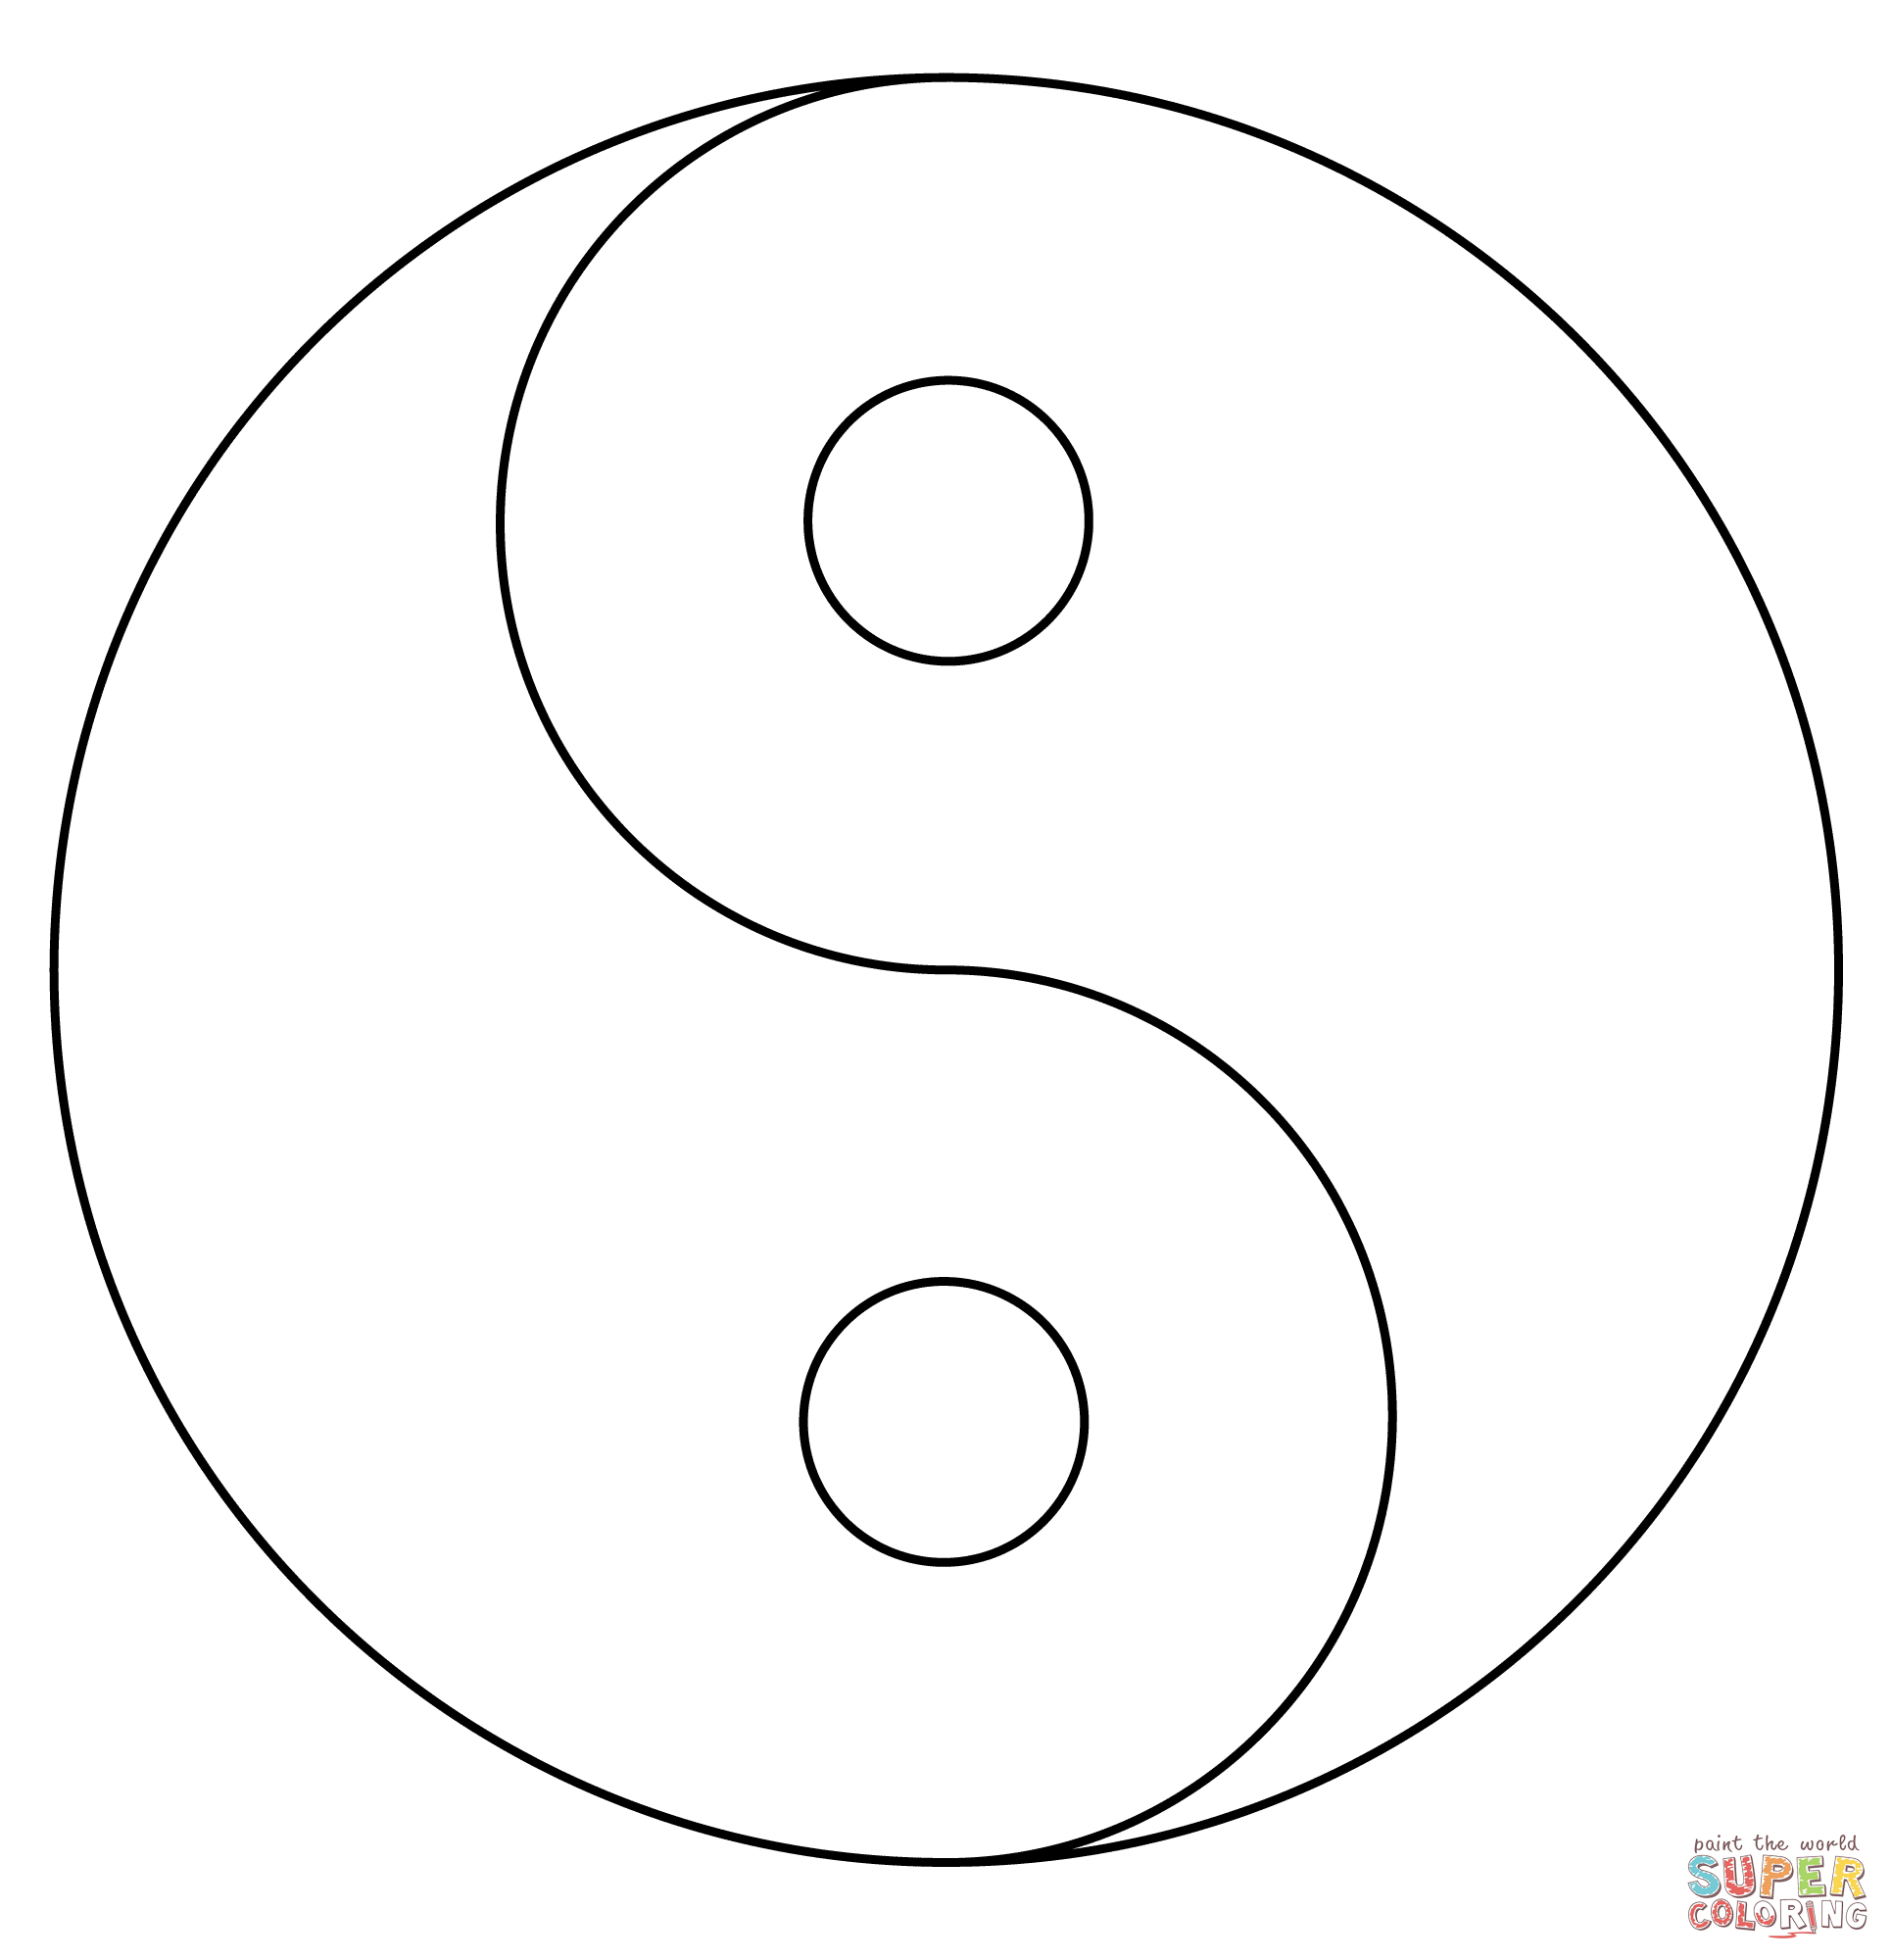 Click the yin yang coloring pages to view printable version or color it online compatible with ipad and android tablets